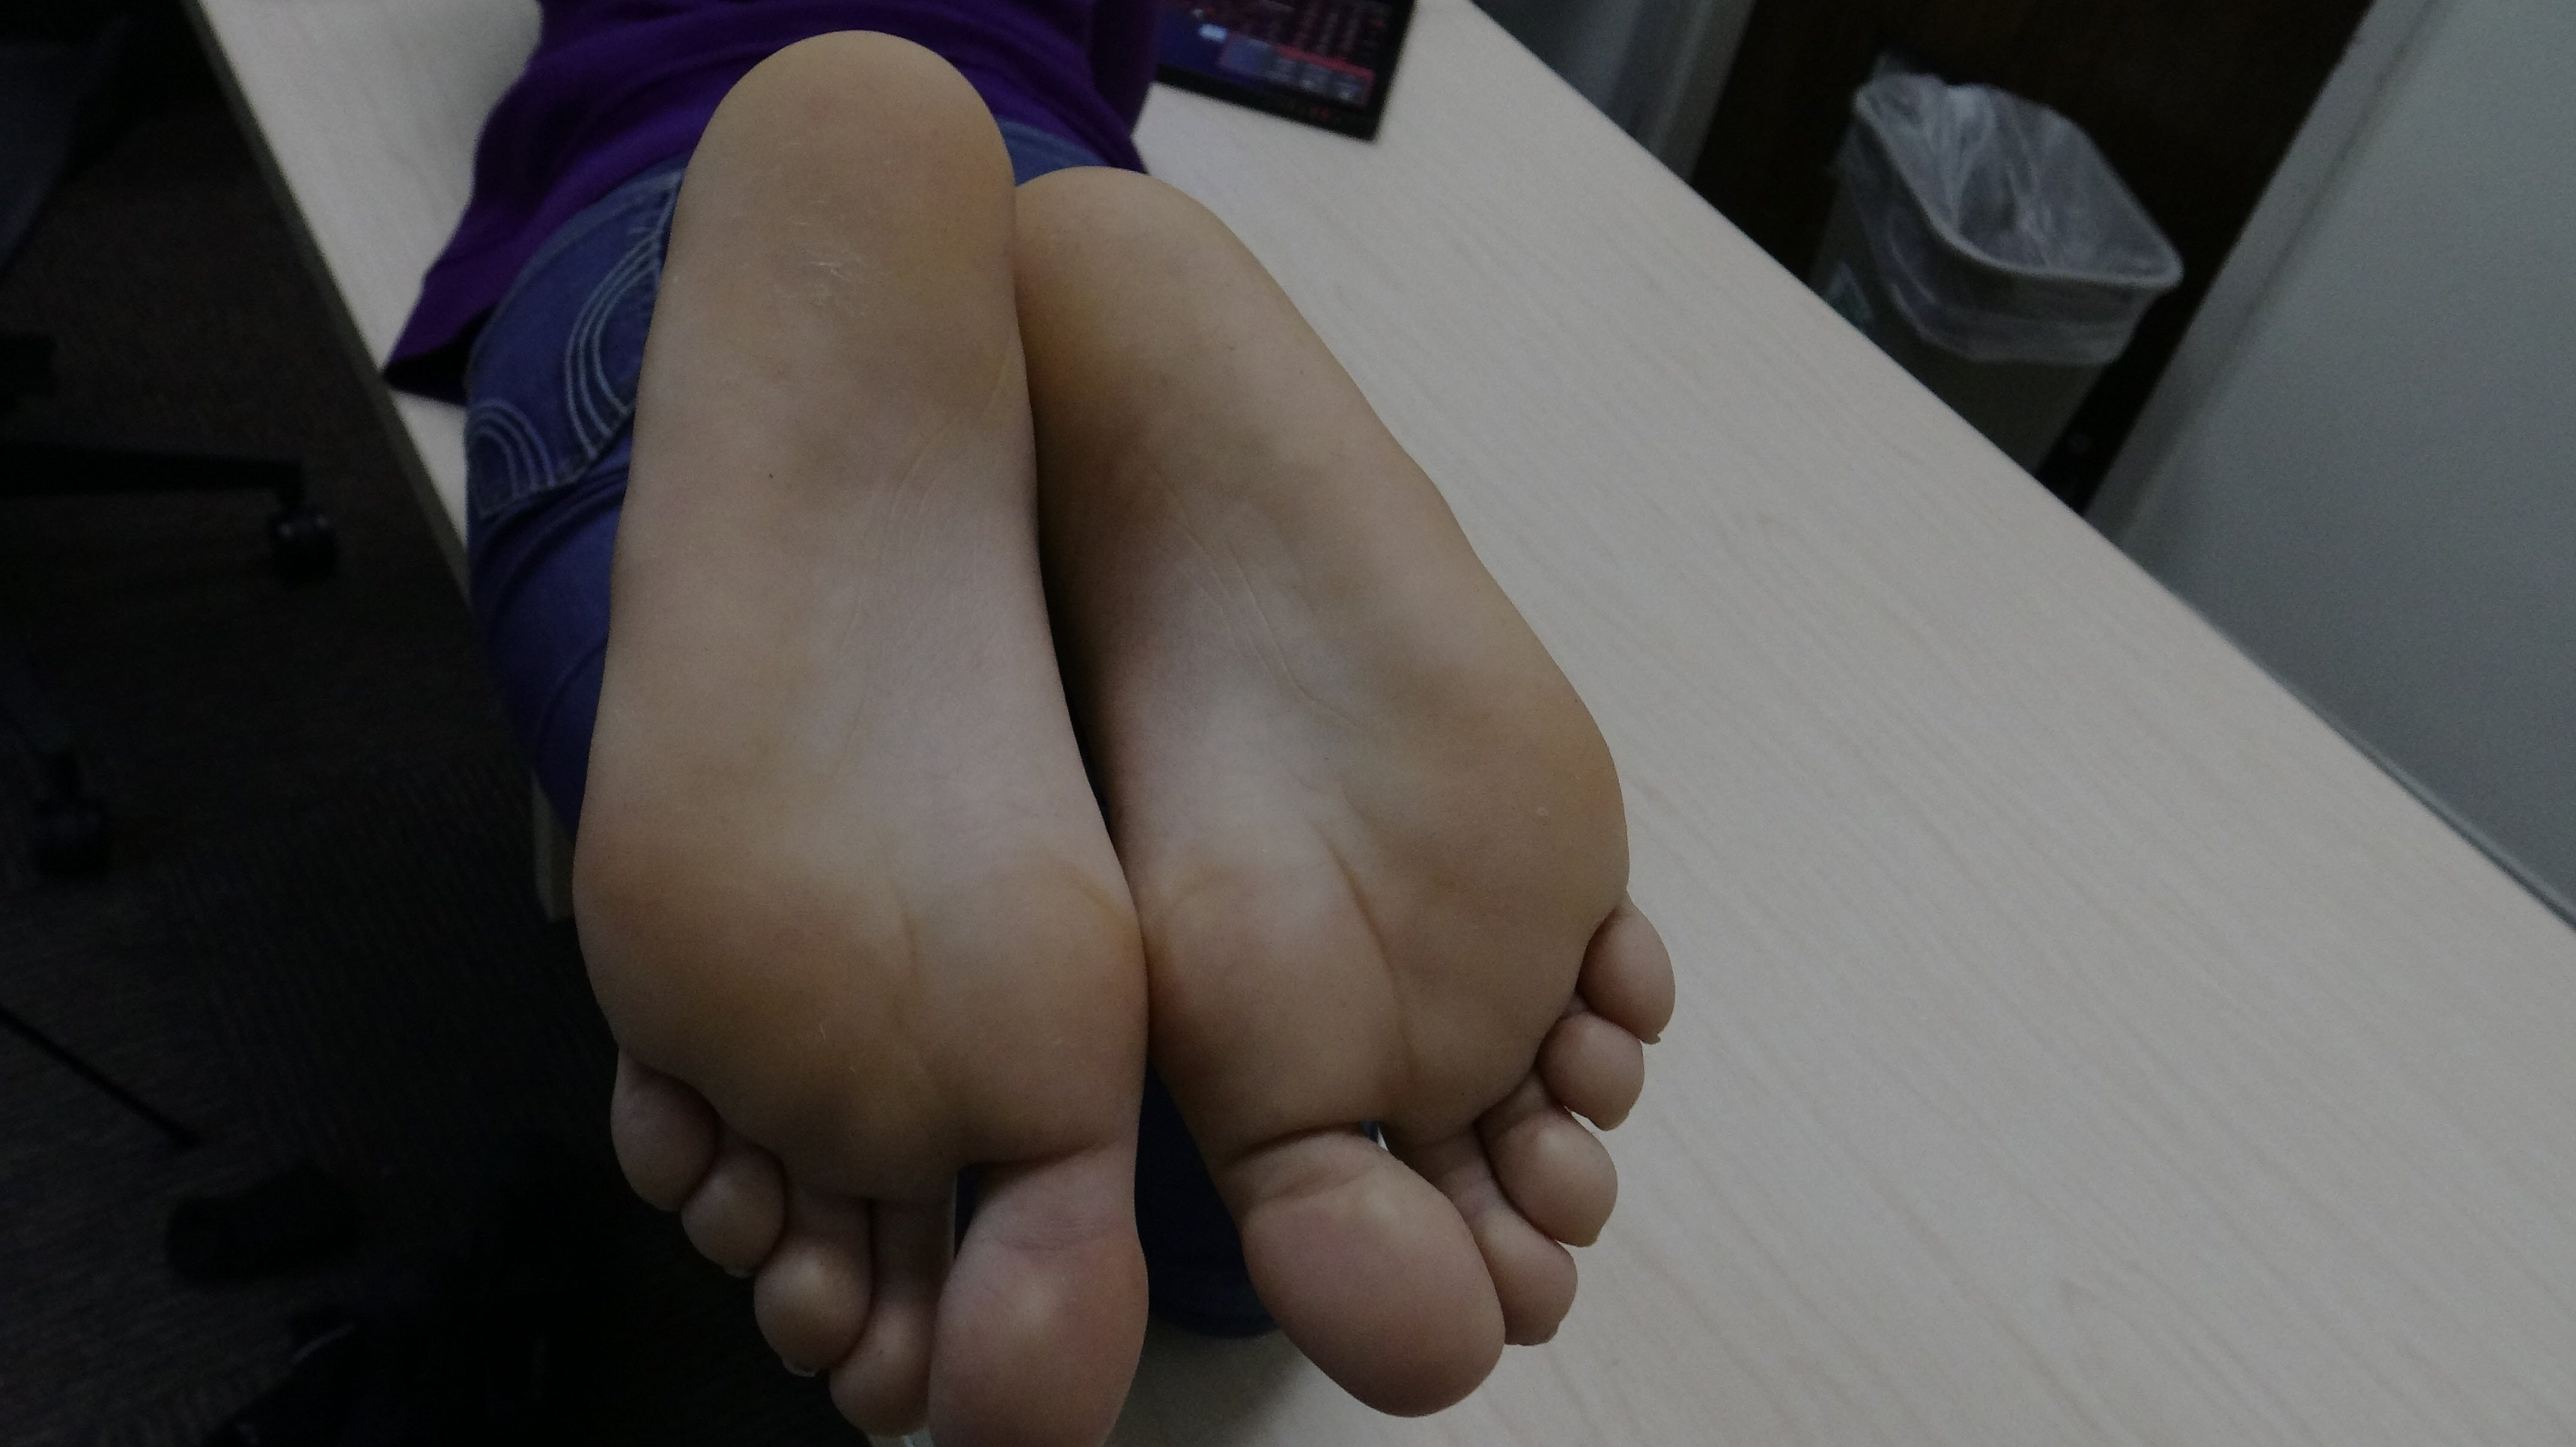 Egyptian Grace's Ticklish Wide Size 7 Candid Feet Soles Part 2 Video Duration 4 minutes 4K Quality